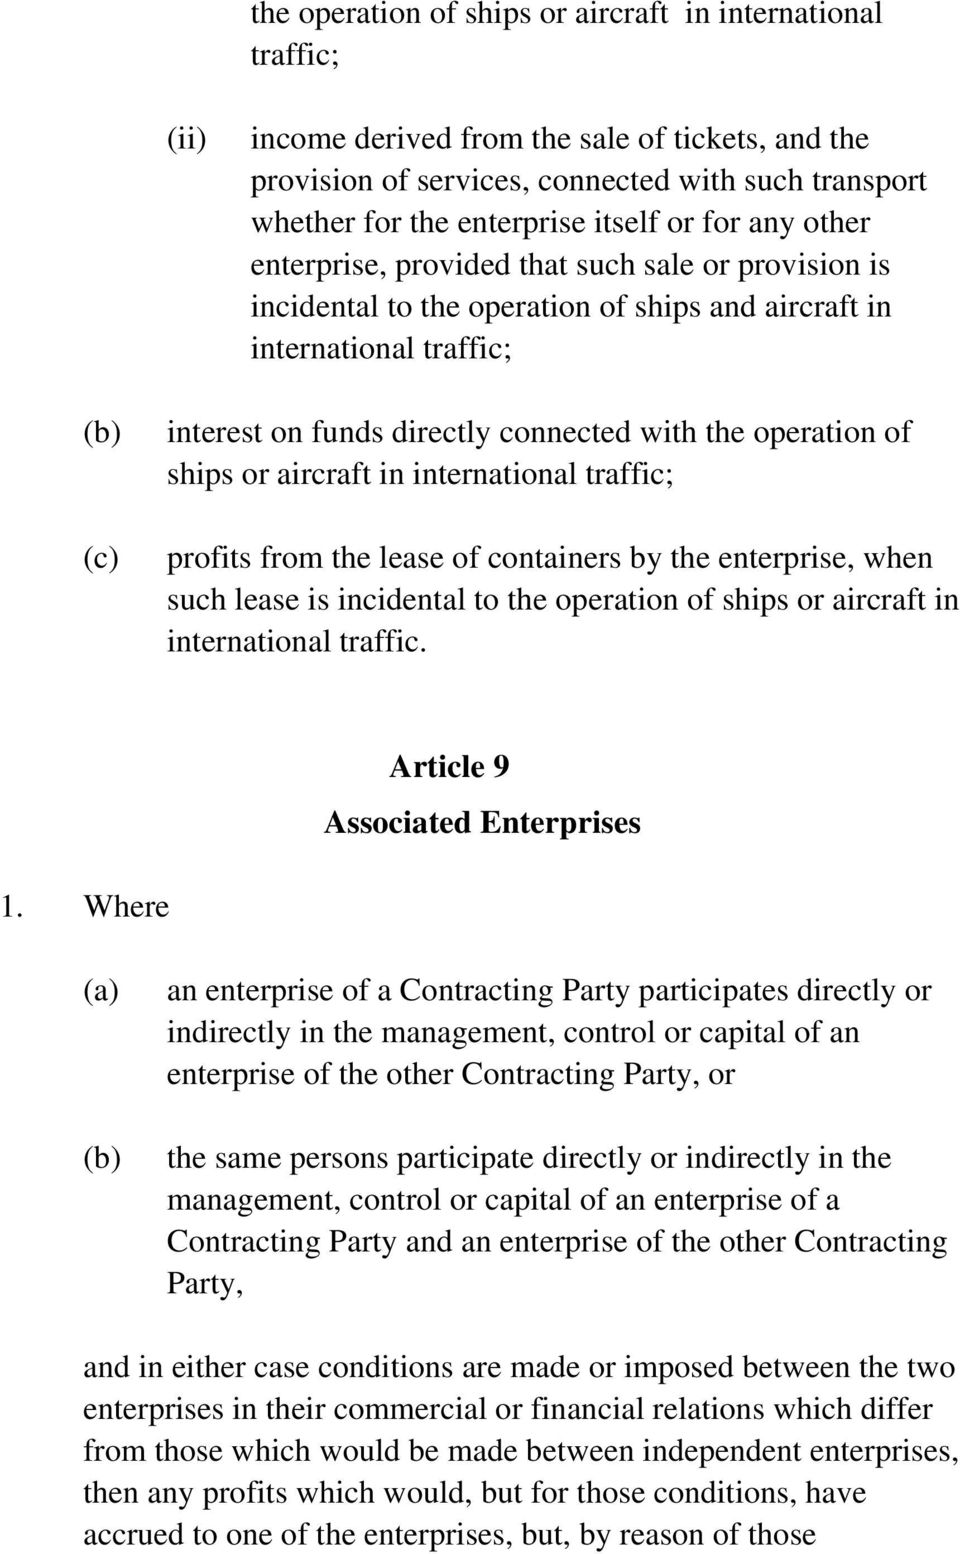 with the operation of ships or aircraft in international traffic; profits from the lease of containers by the enterprise, when such lease is incidental to the operation of ships or aircraft in